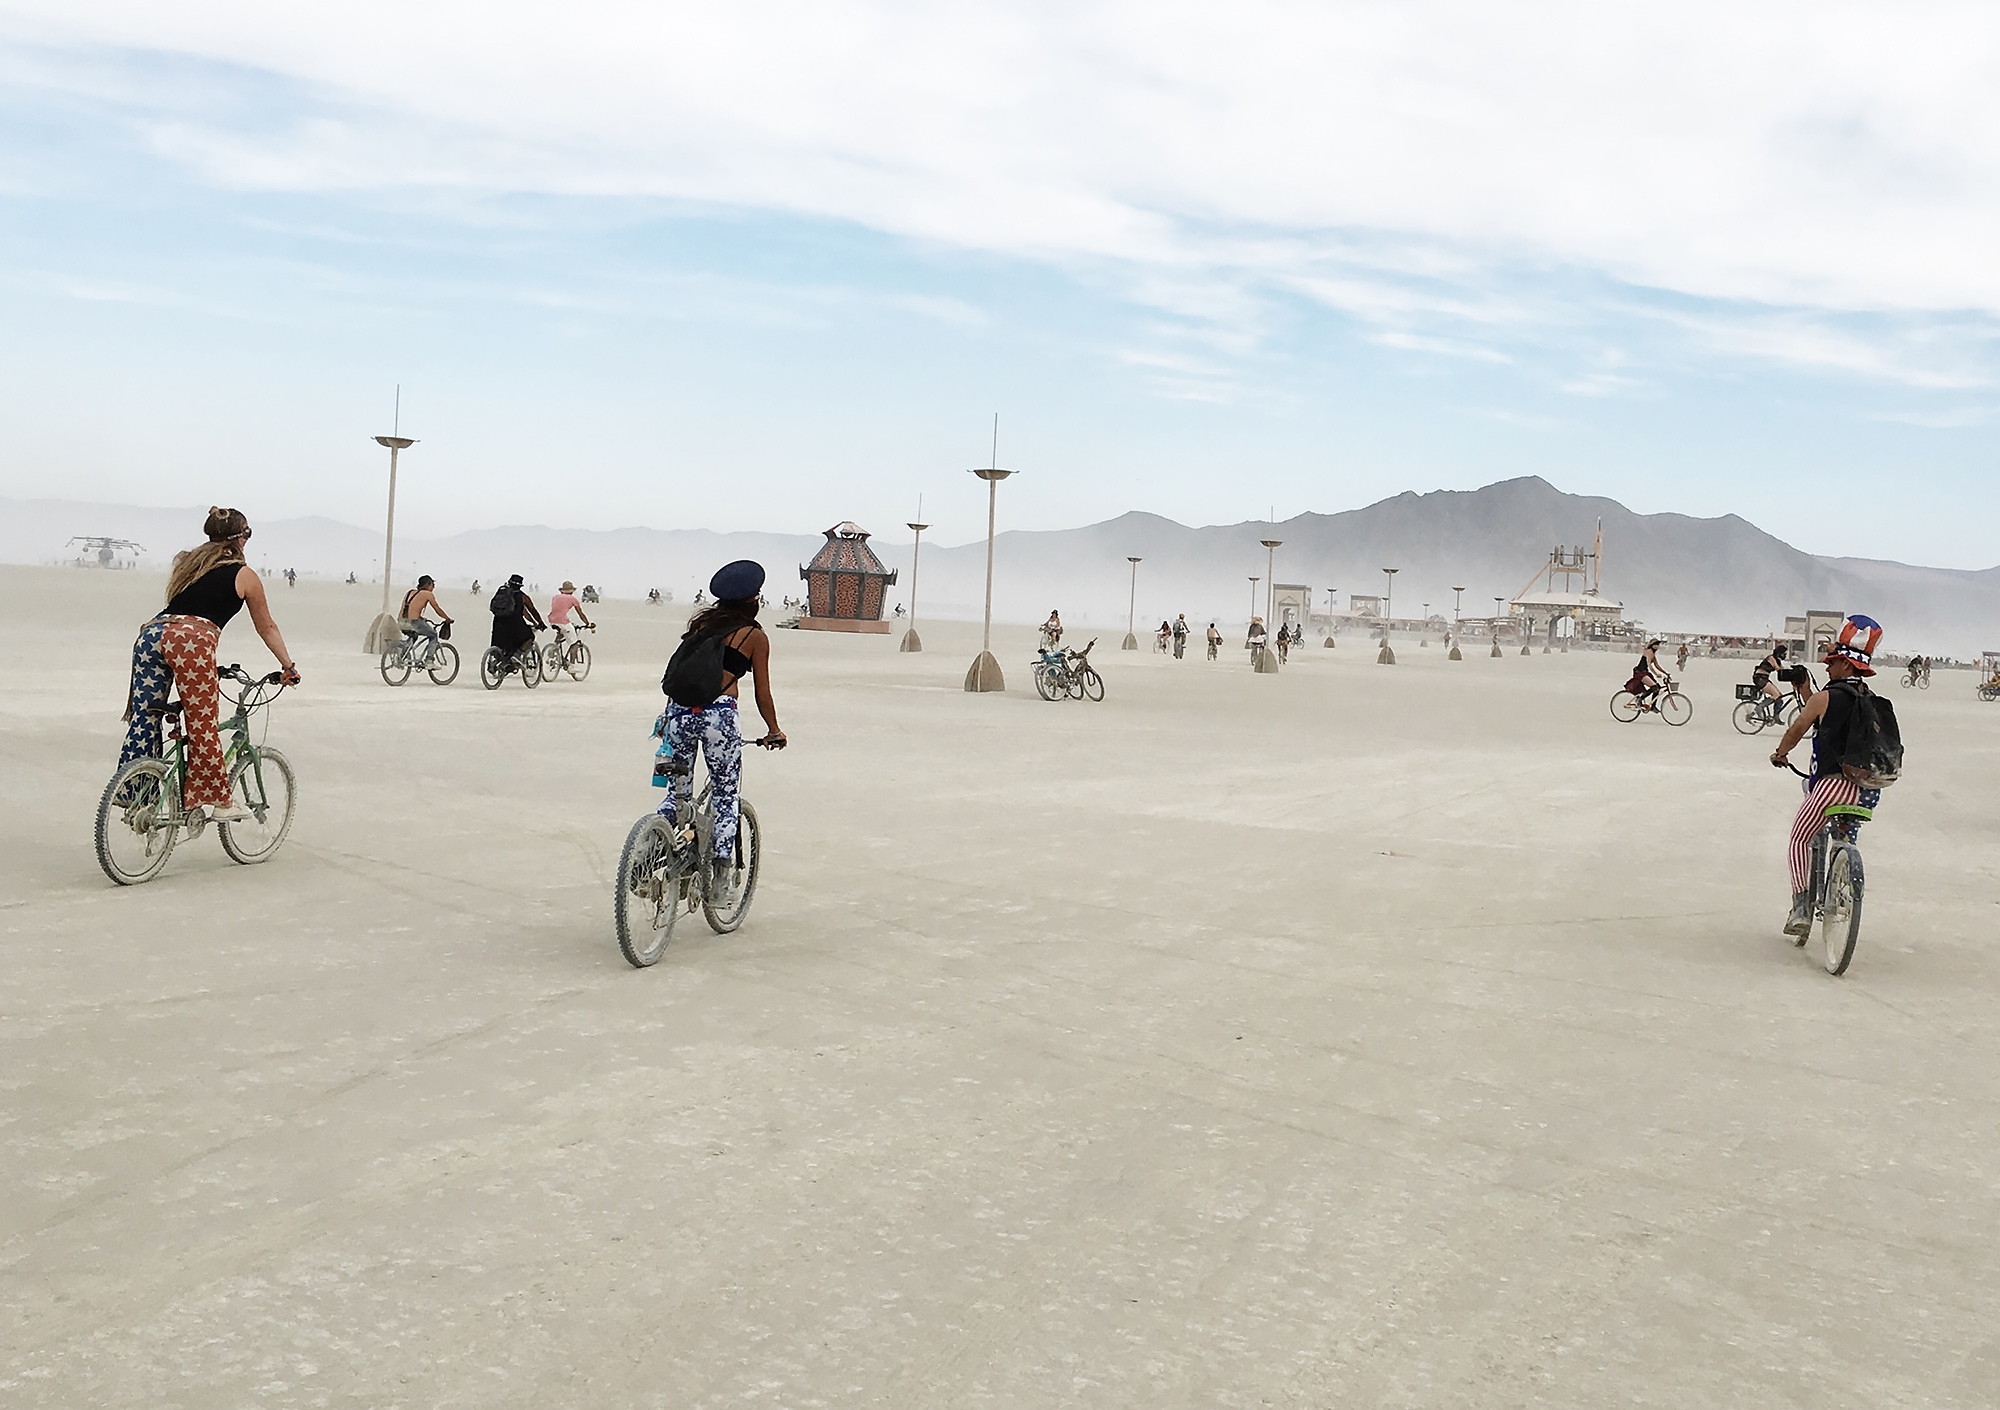 Biking across the playa.